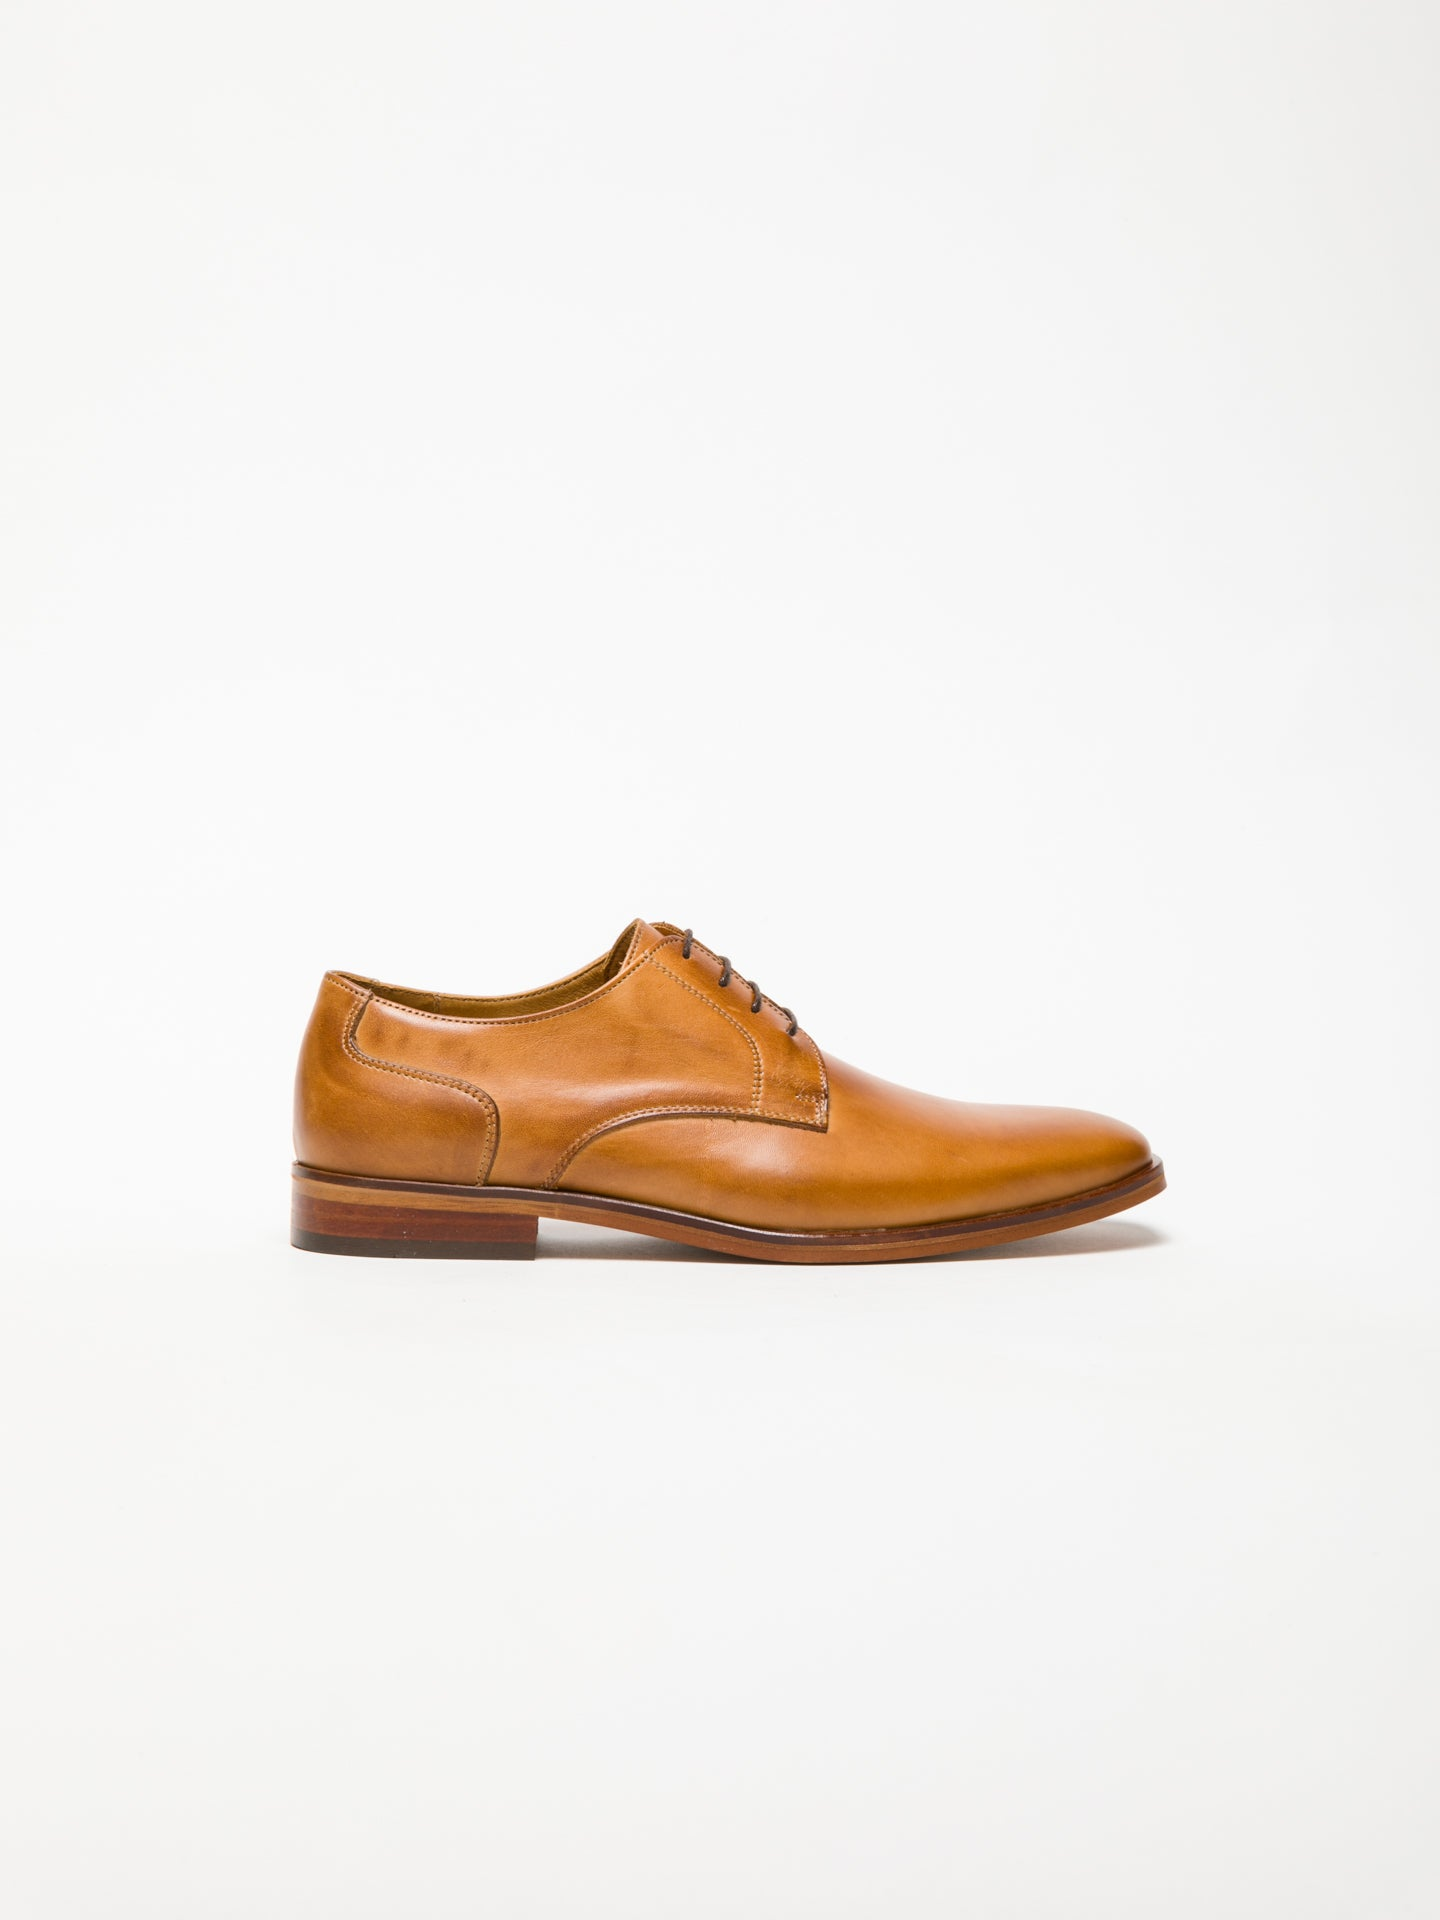 Foreva Peru Derby Shoes